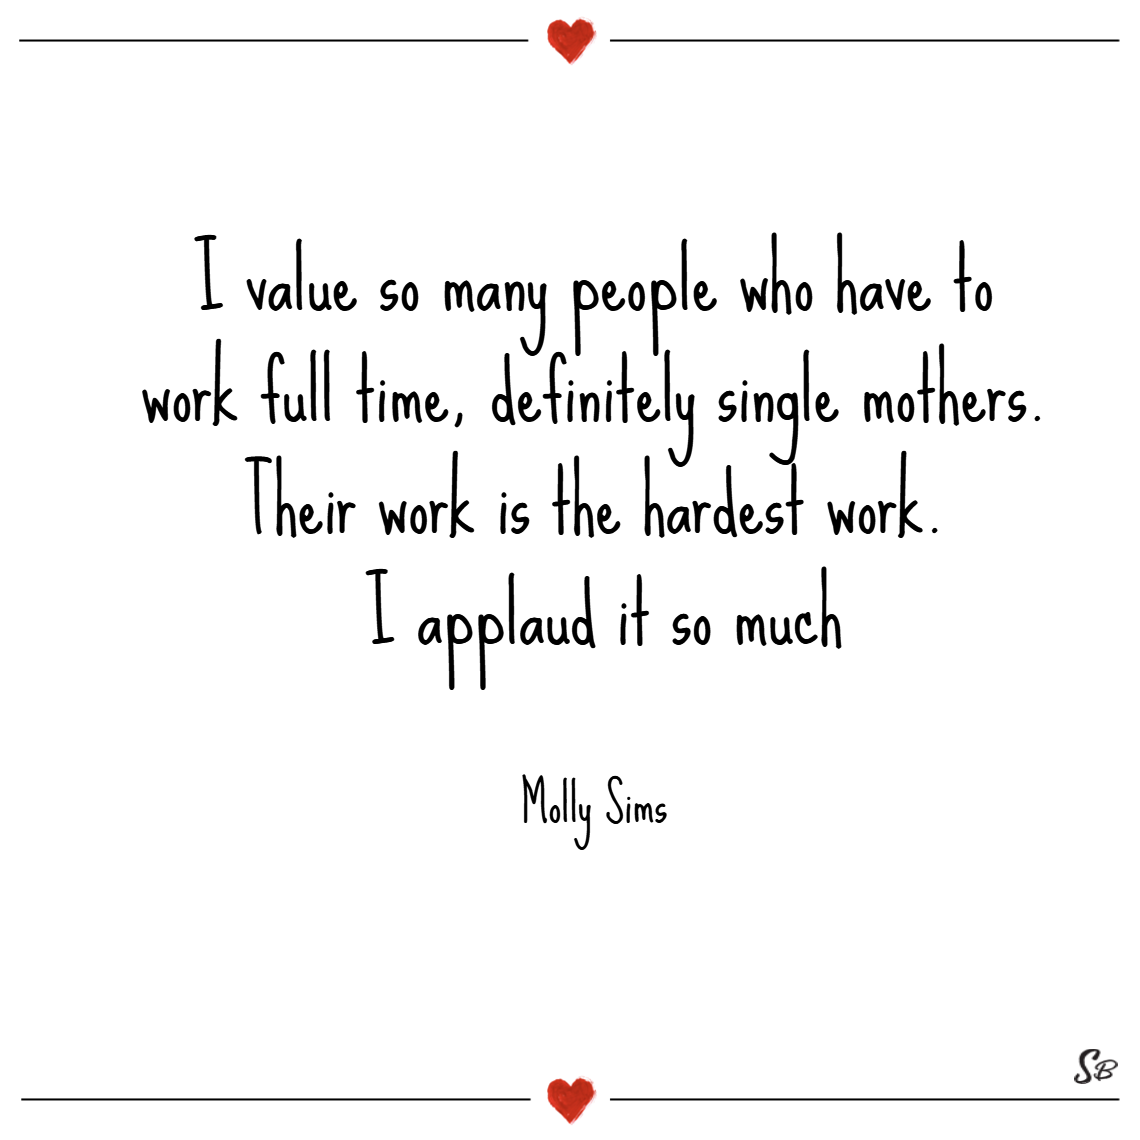 I value so many people who have to work full time, definitely single mothers. their work is the hardest work. i applaud it so much. – molly sims